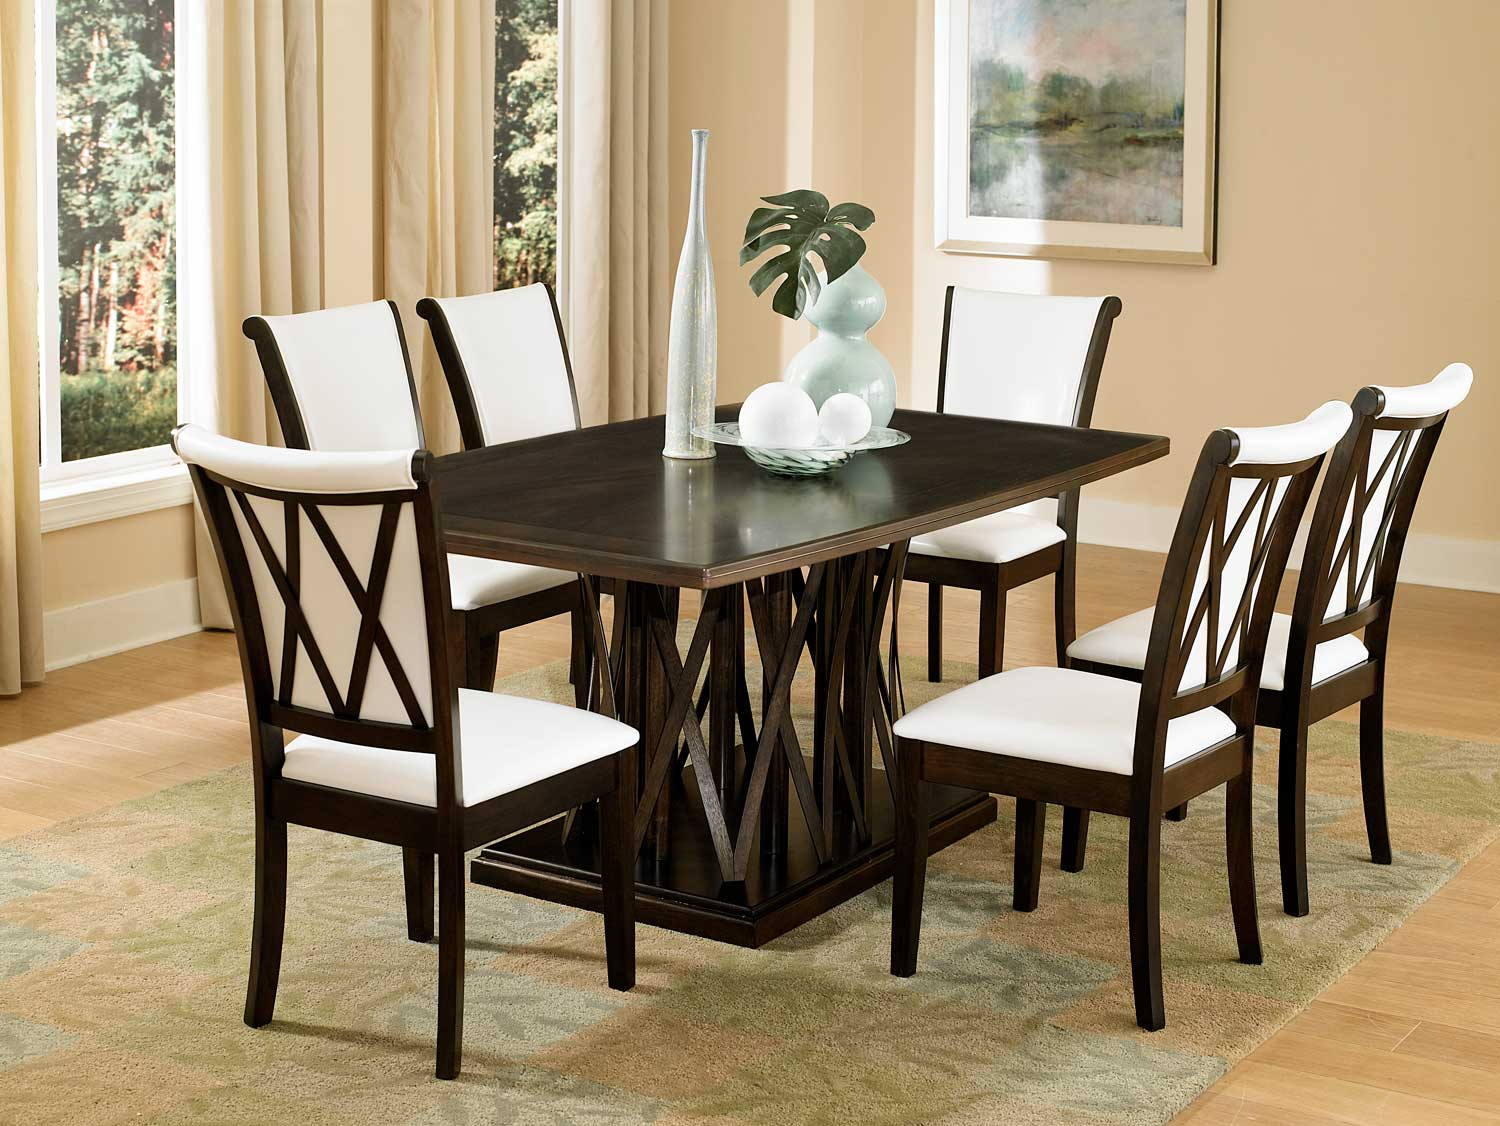 Homelegance Garvey Dining Set with White Chairs